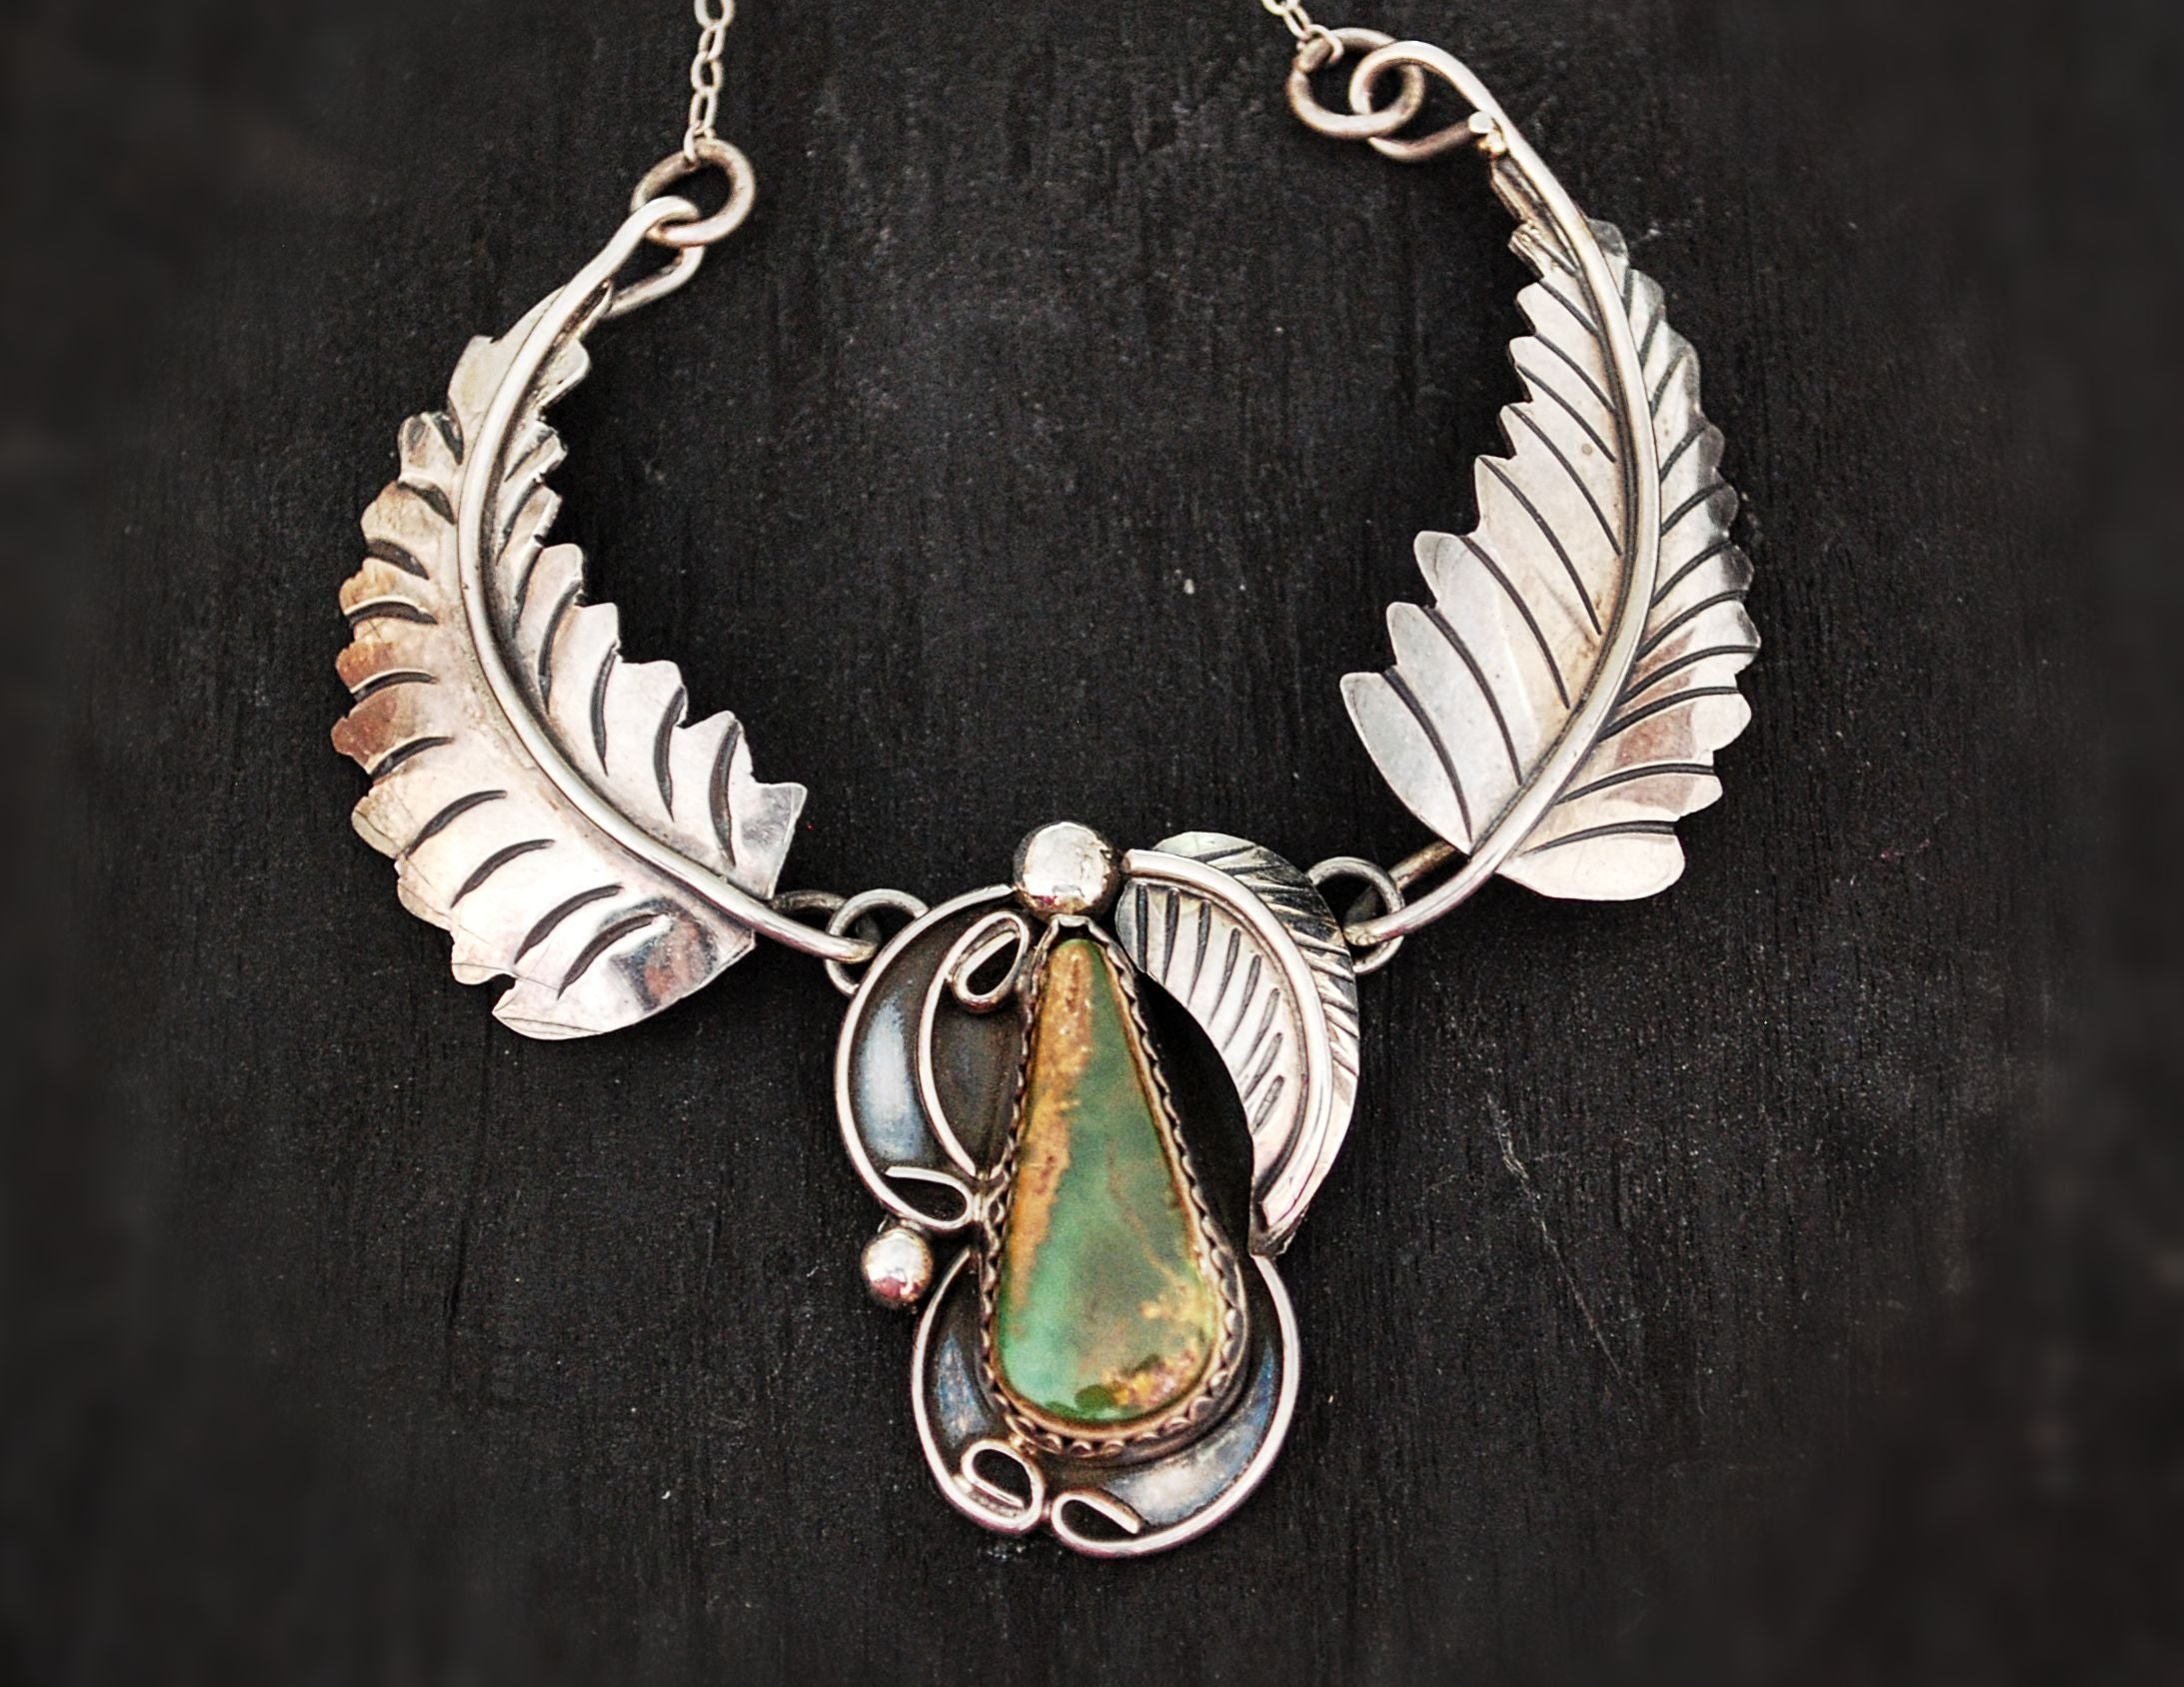 Navajo Turquoise Feather Necklace - Signed Patricia Platero